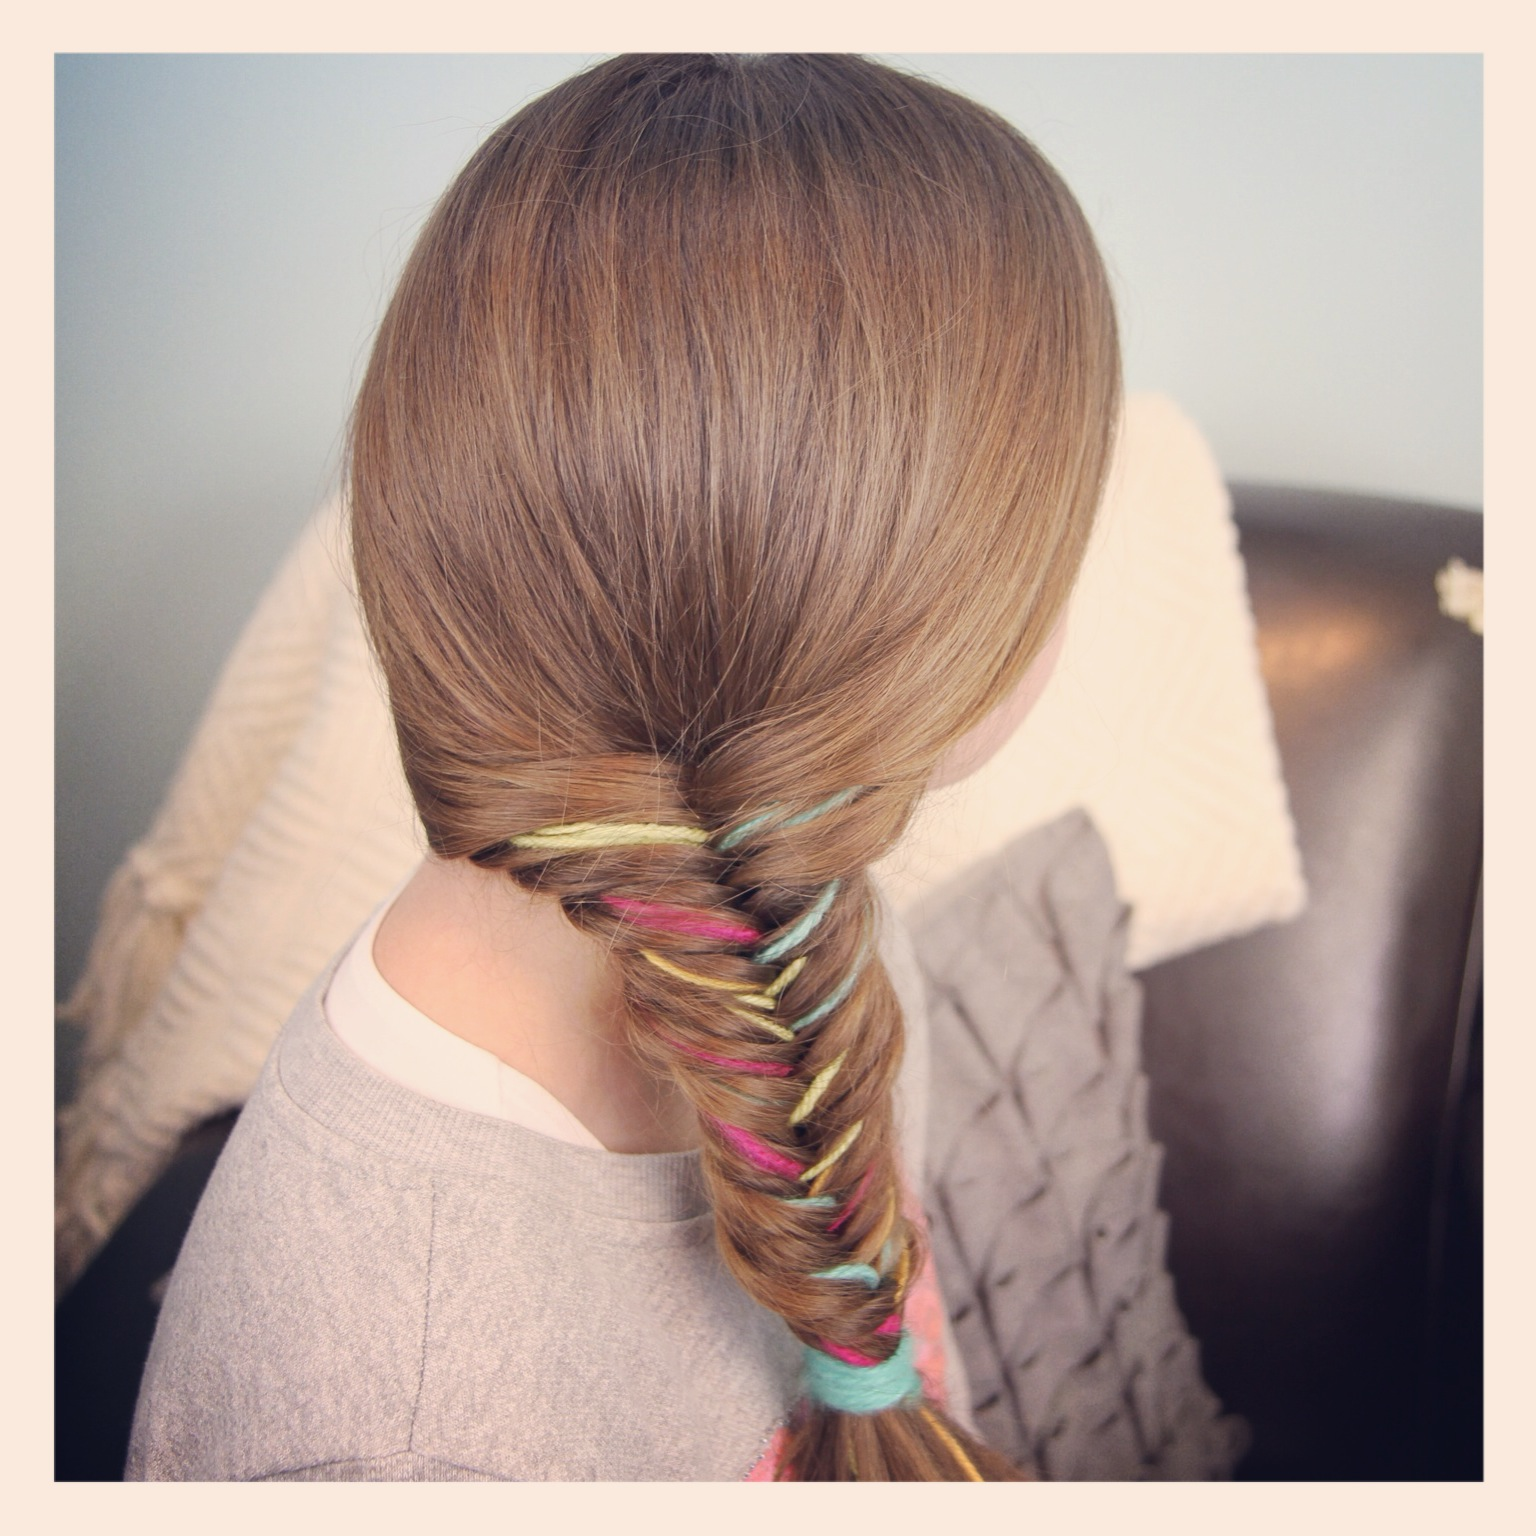 Yarn Extension Fishtail Braid  Temporary Color Highlights - Cute